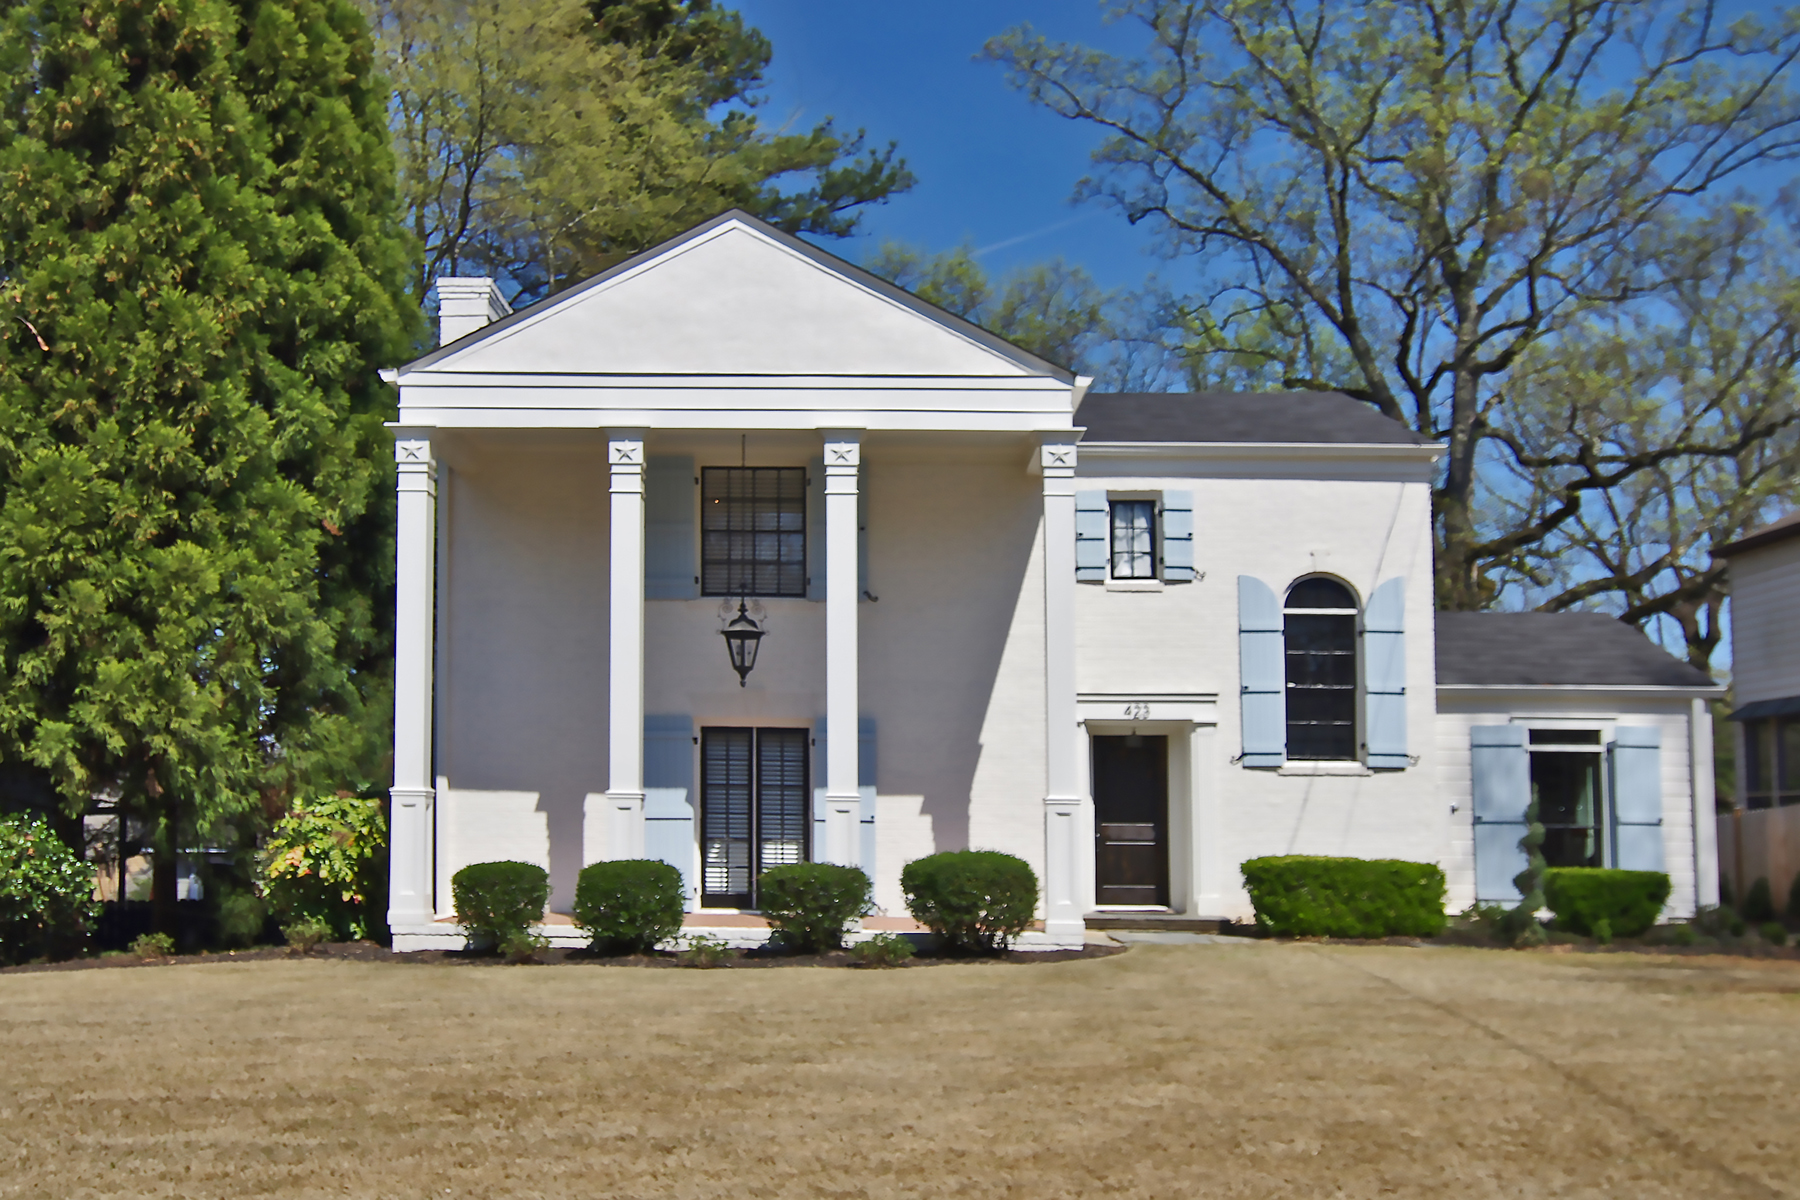 Single Family Home for Sale at Designer Two Story Brick Traditional 423 Collier Road NW Collier Hills, Atlanta, Georgia 30309 United States